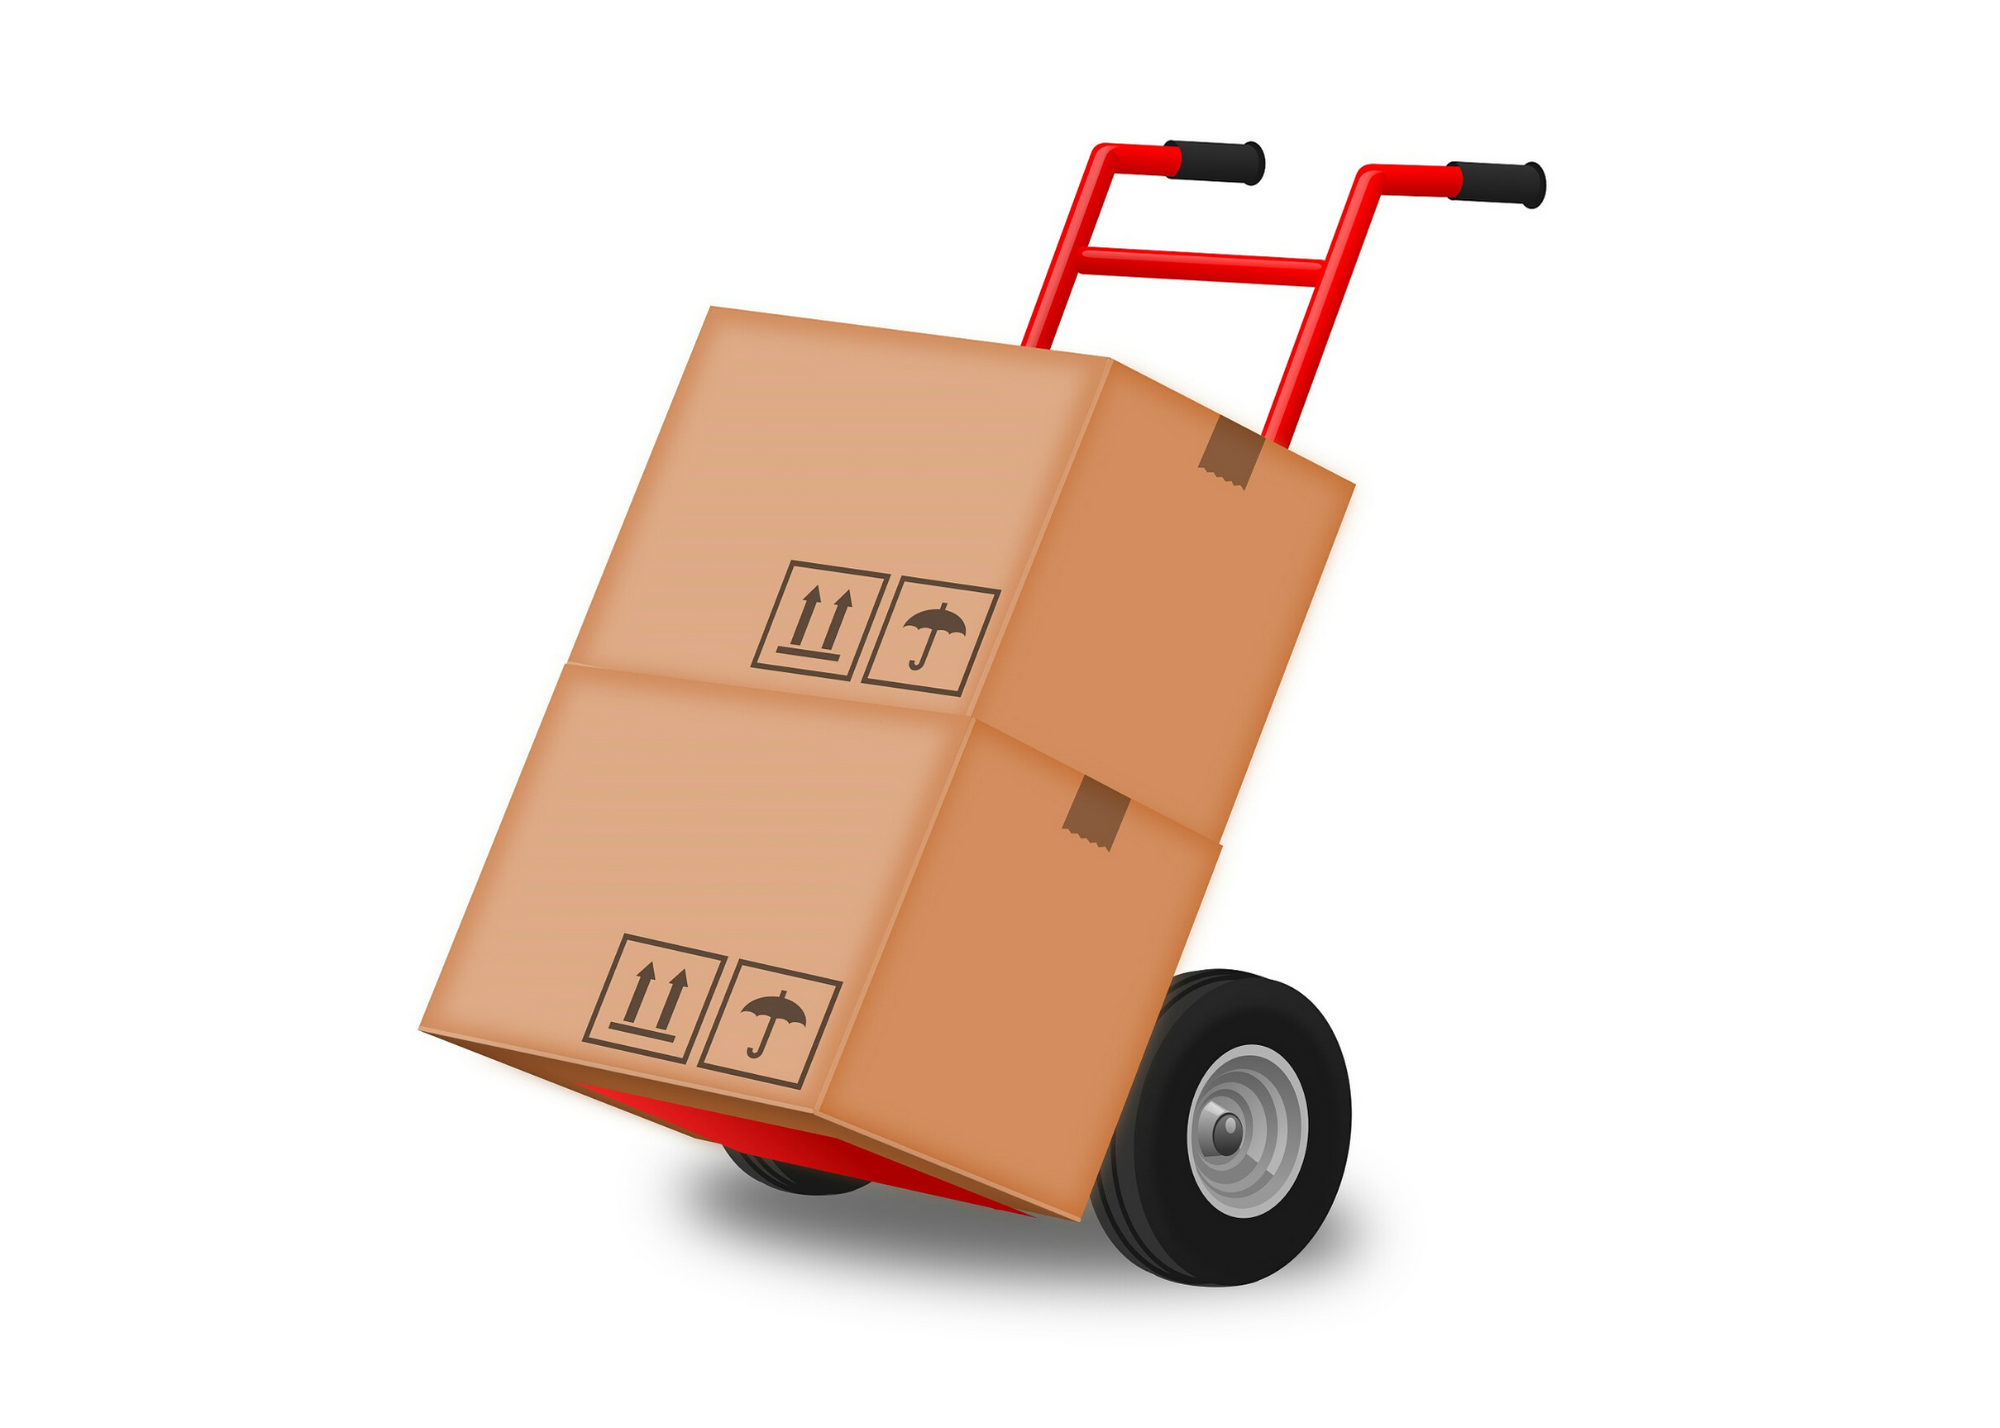 Equipment Safety Essentials (Part 2 of 5): How to Use A Two-Wheeled Handcart